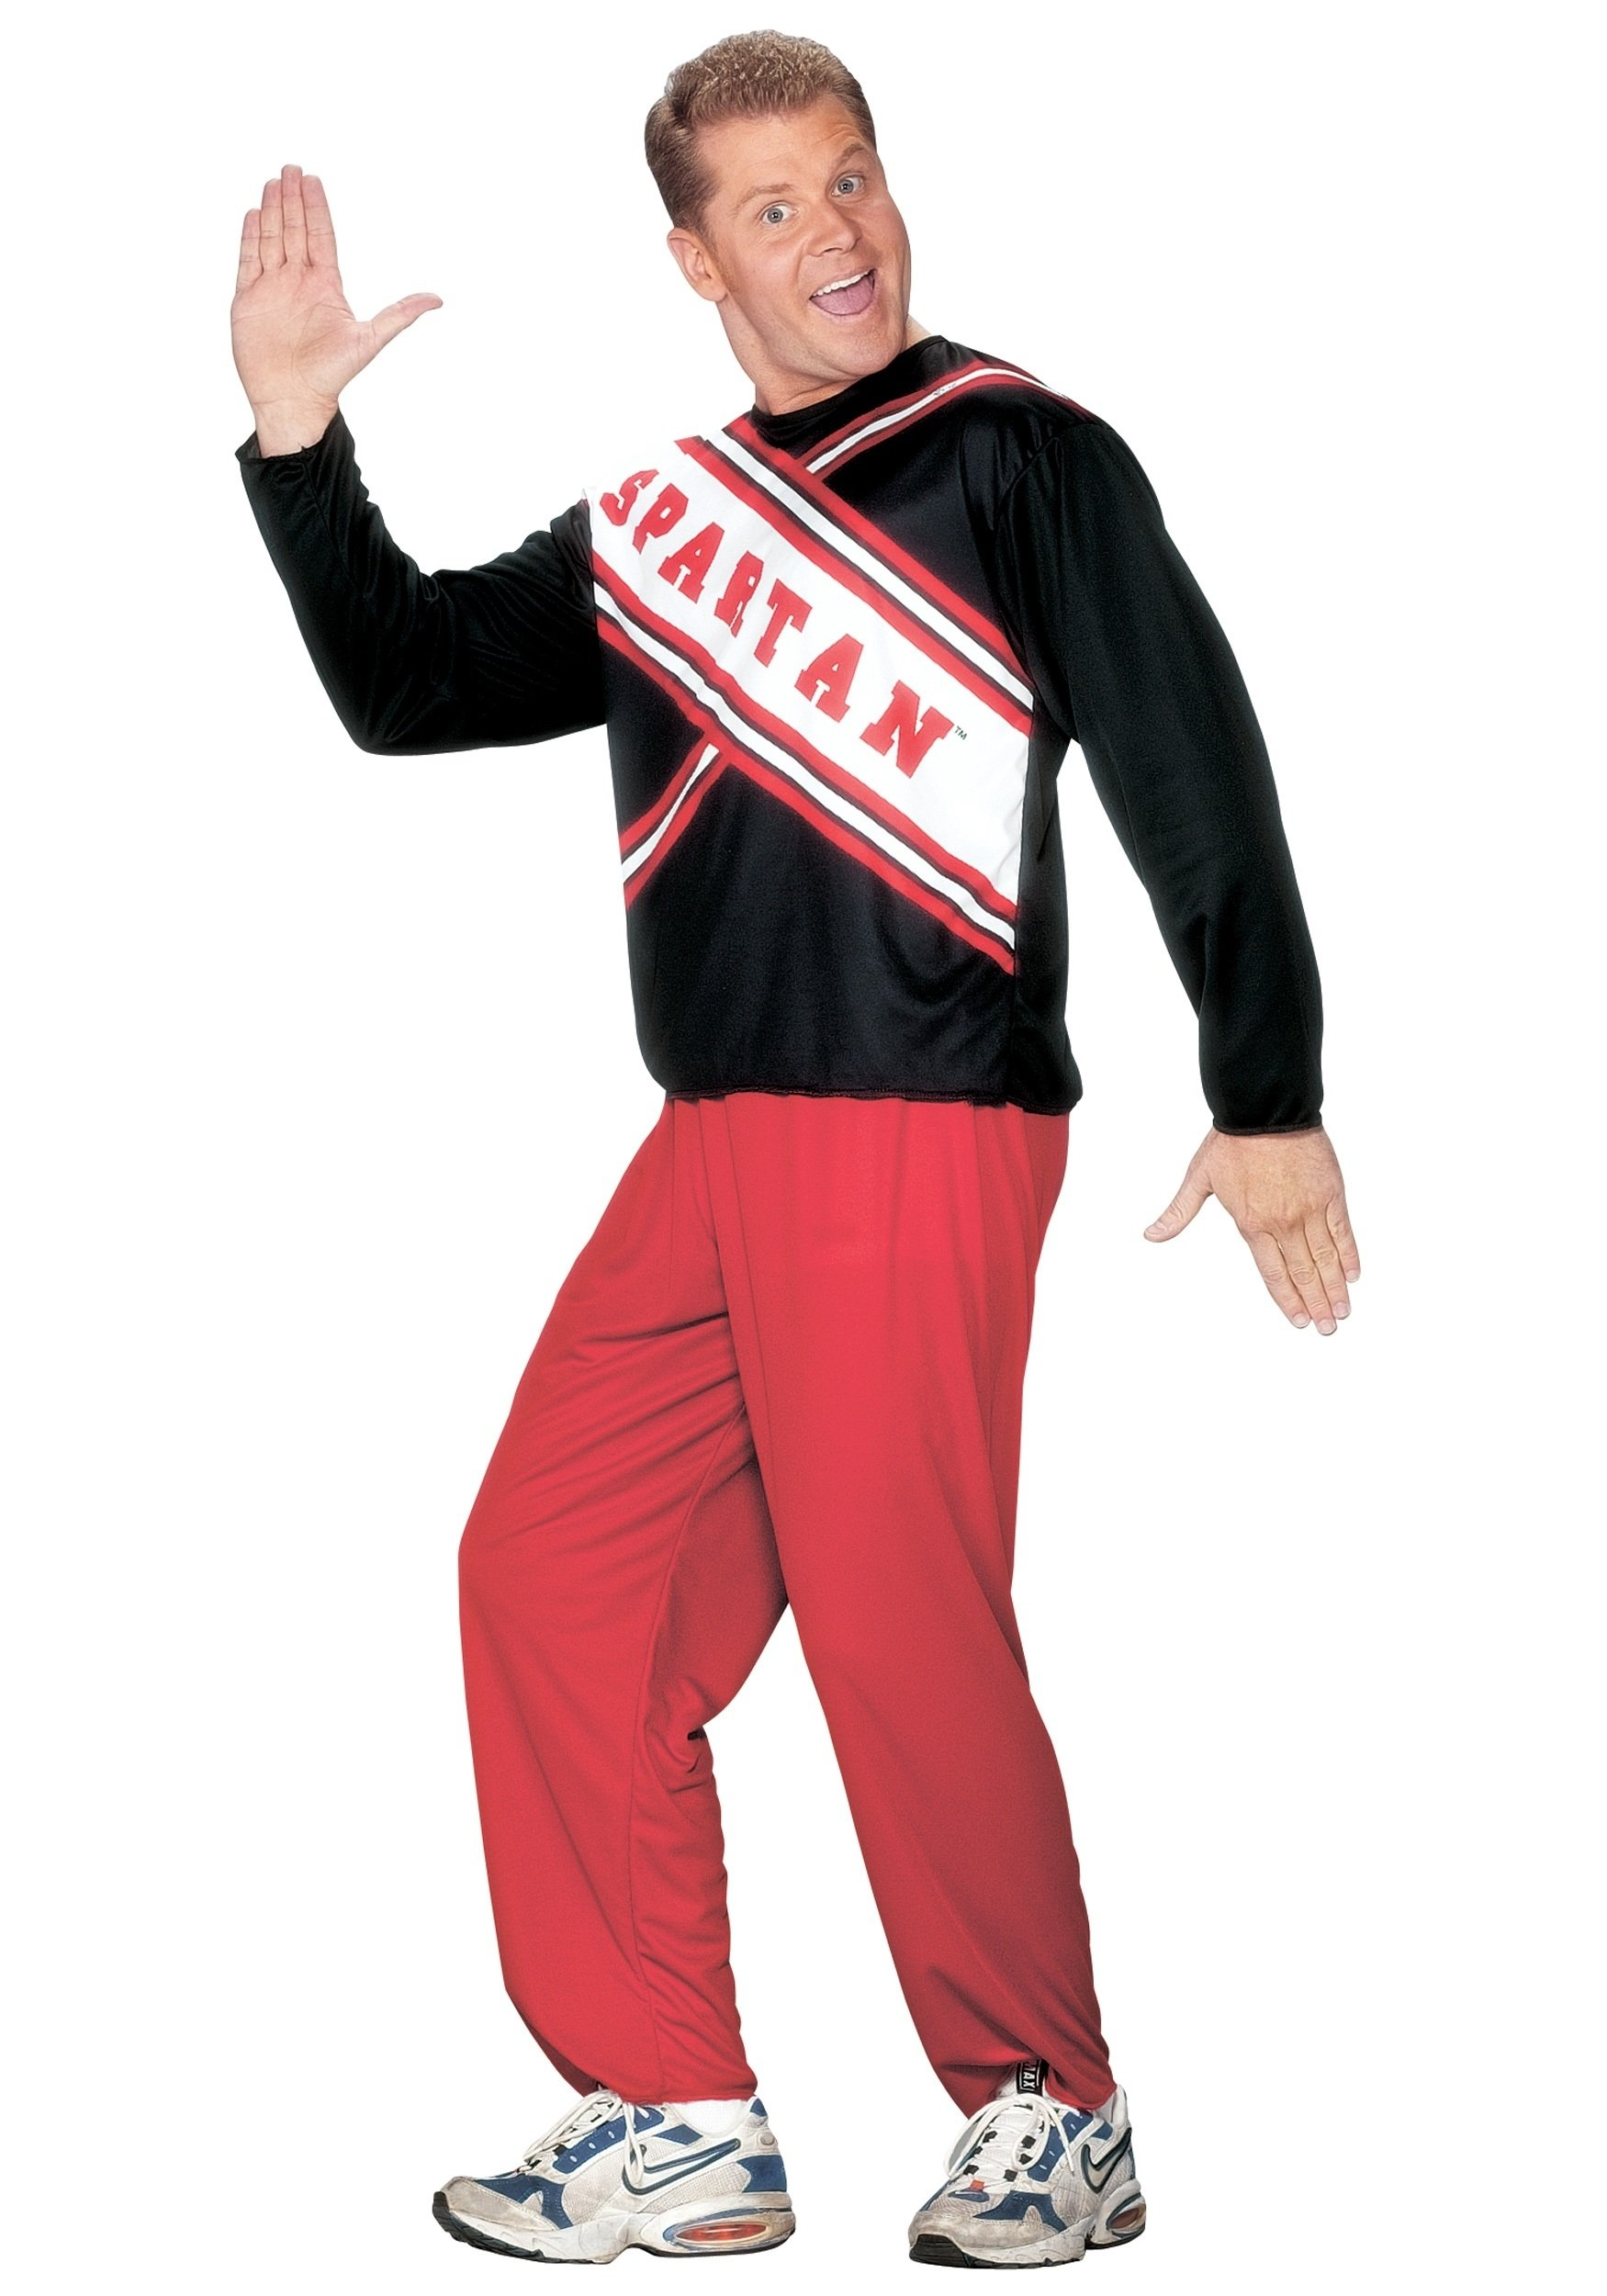 10 Trendy Saturday Night Live Costume Ideas mens cheerleader spartan costume saturday night live will ferrel 2020